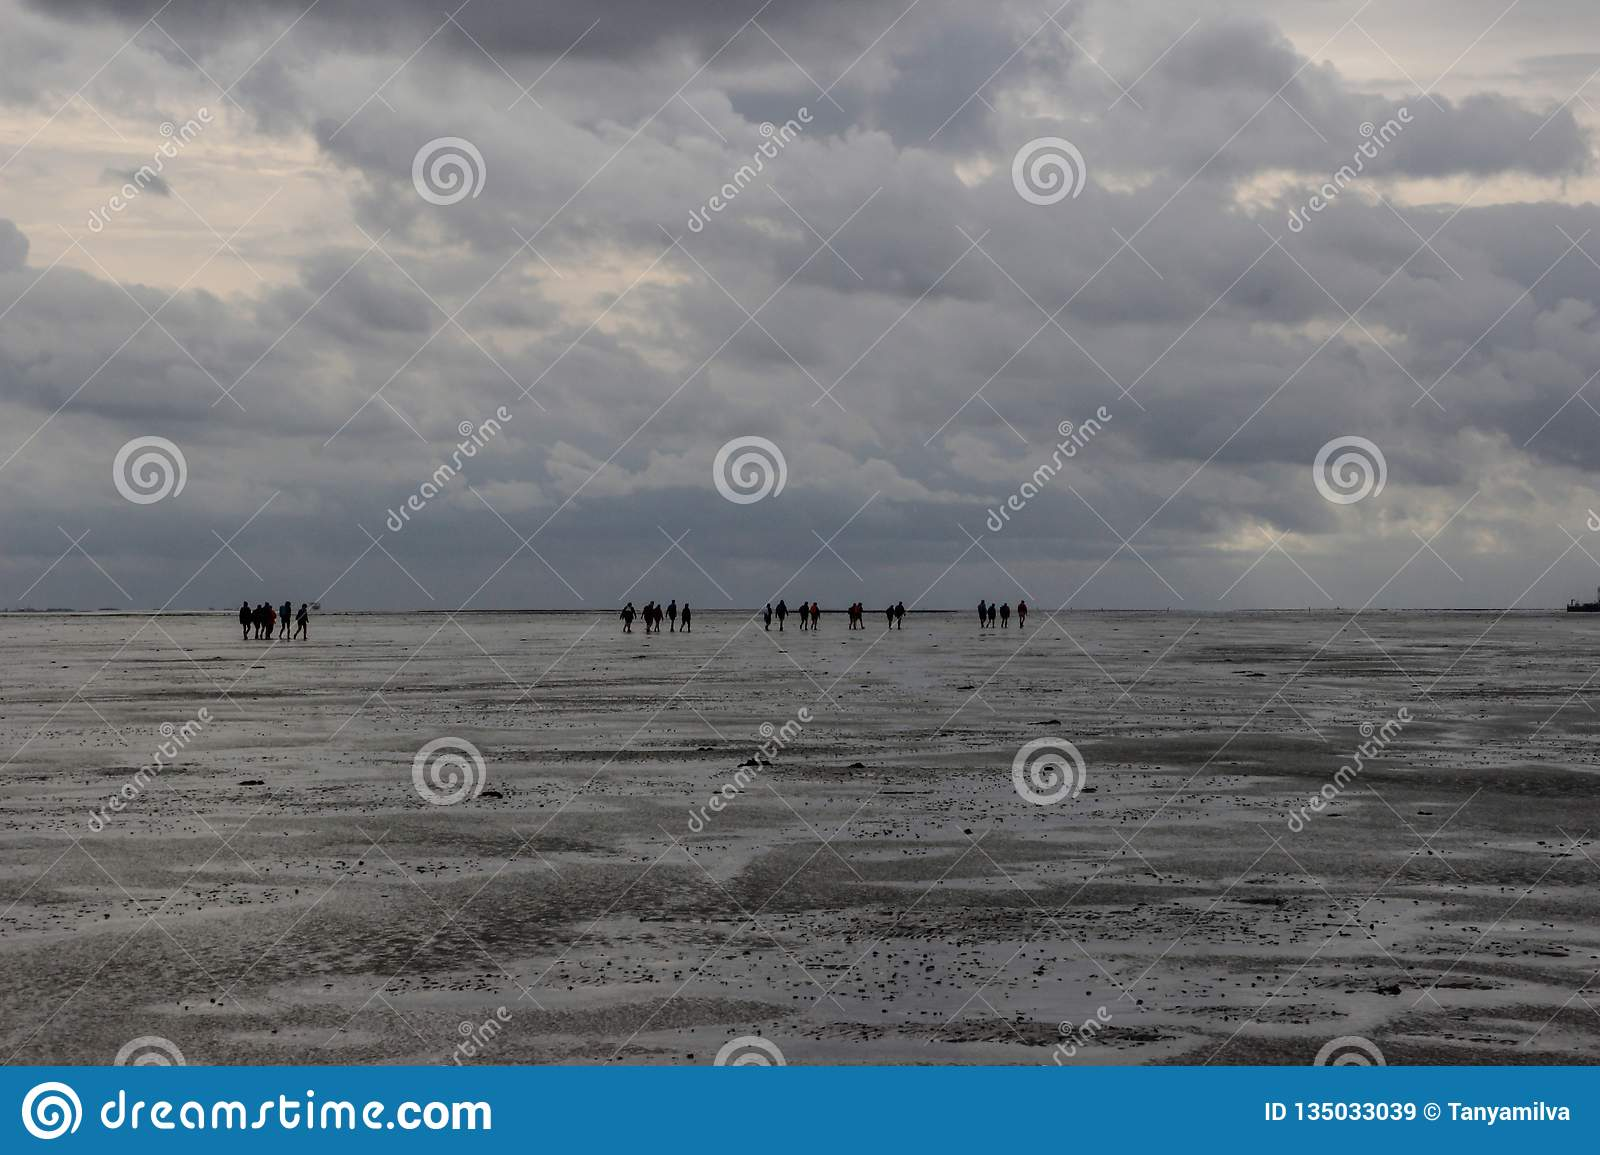 A group of tourists walks on the seabed at low tide from Holland to the island in bad weather and rain